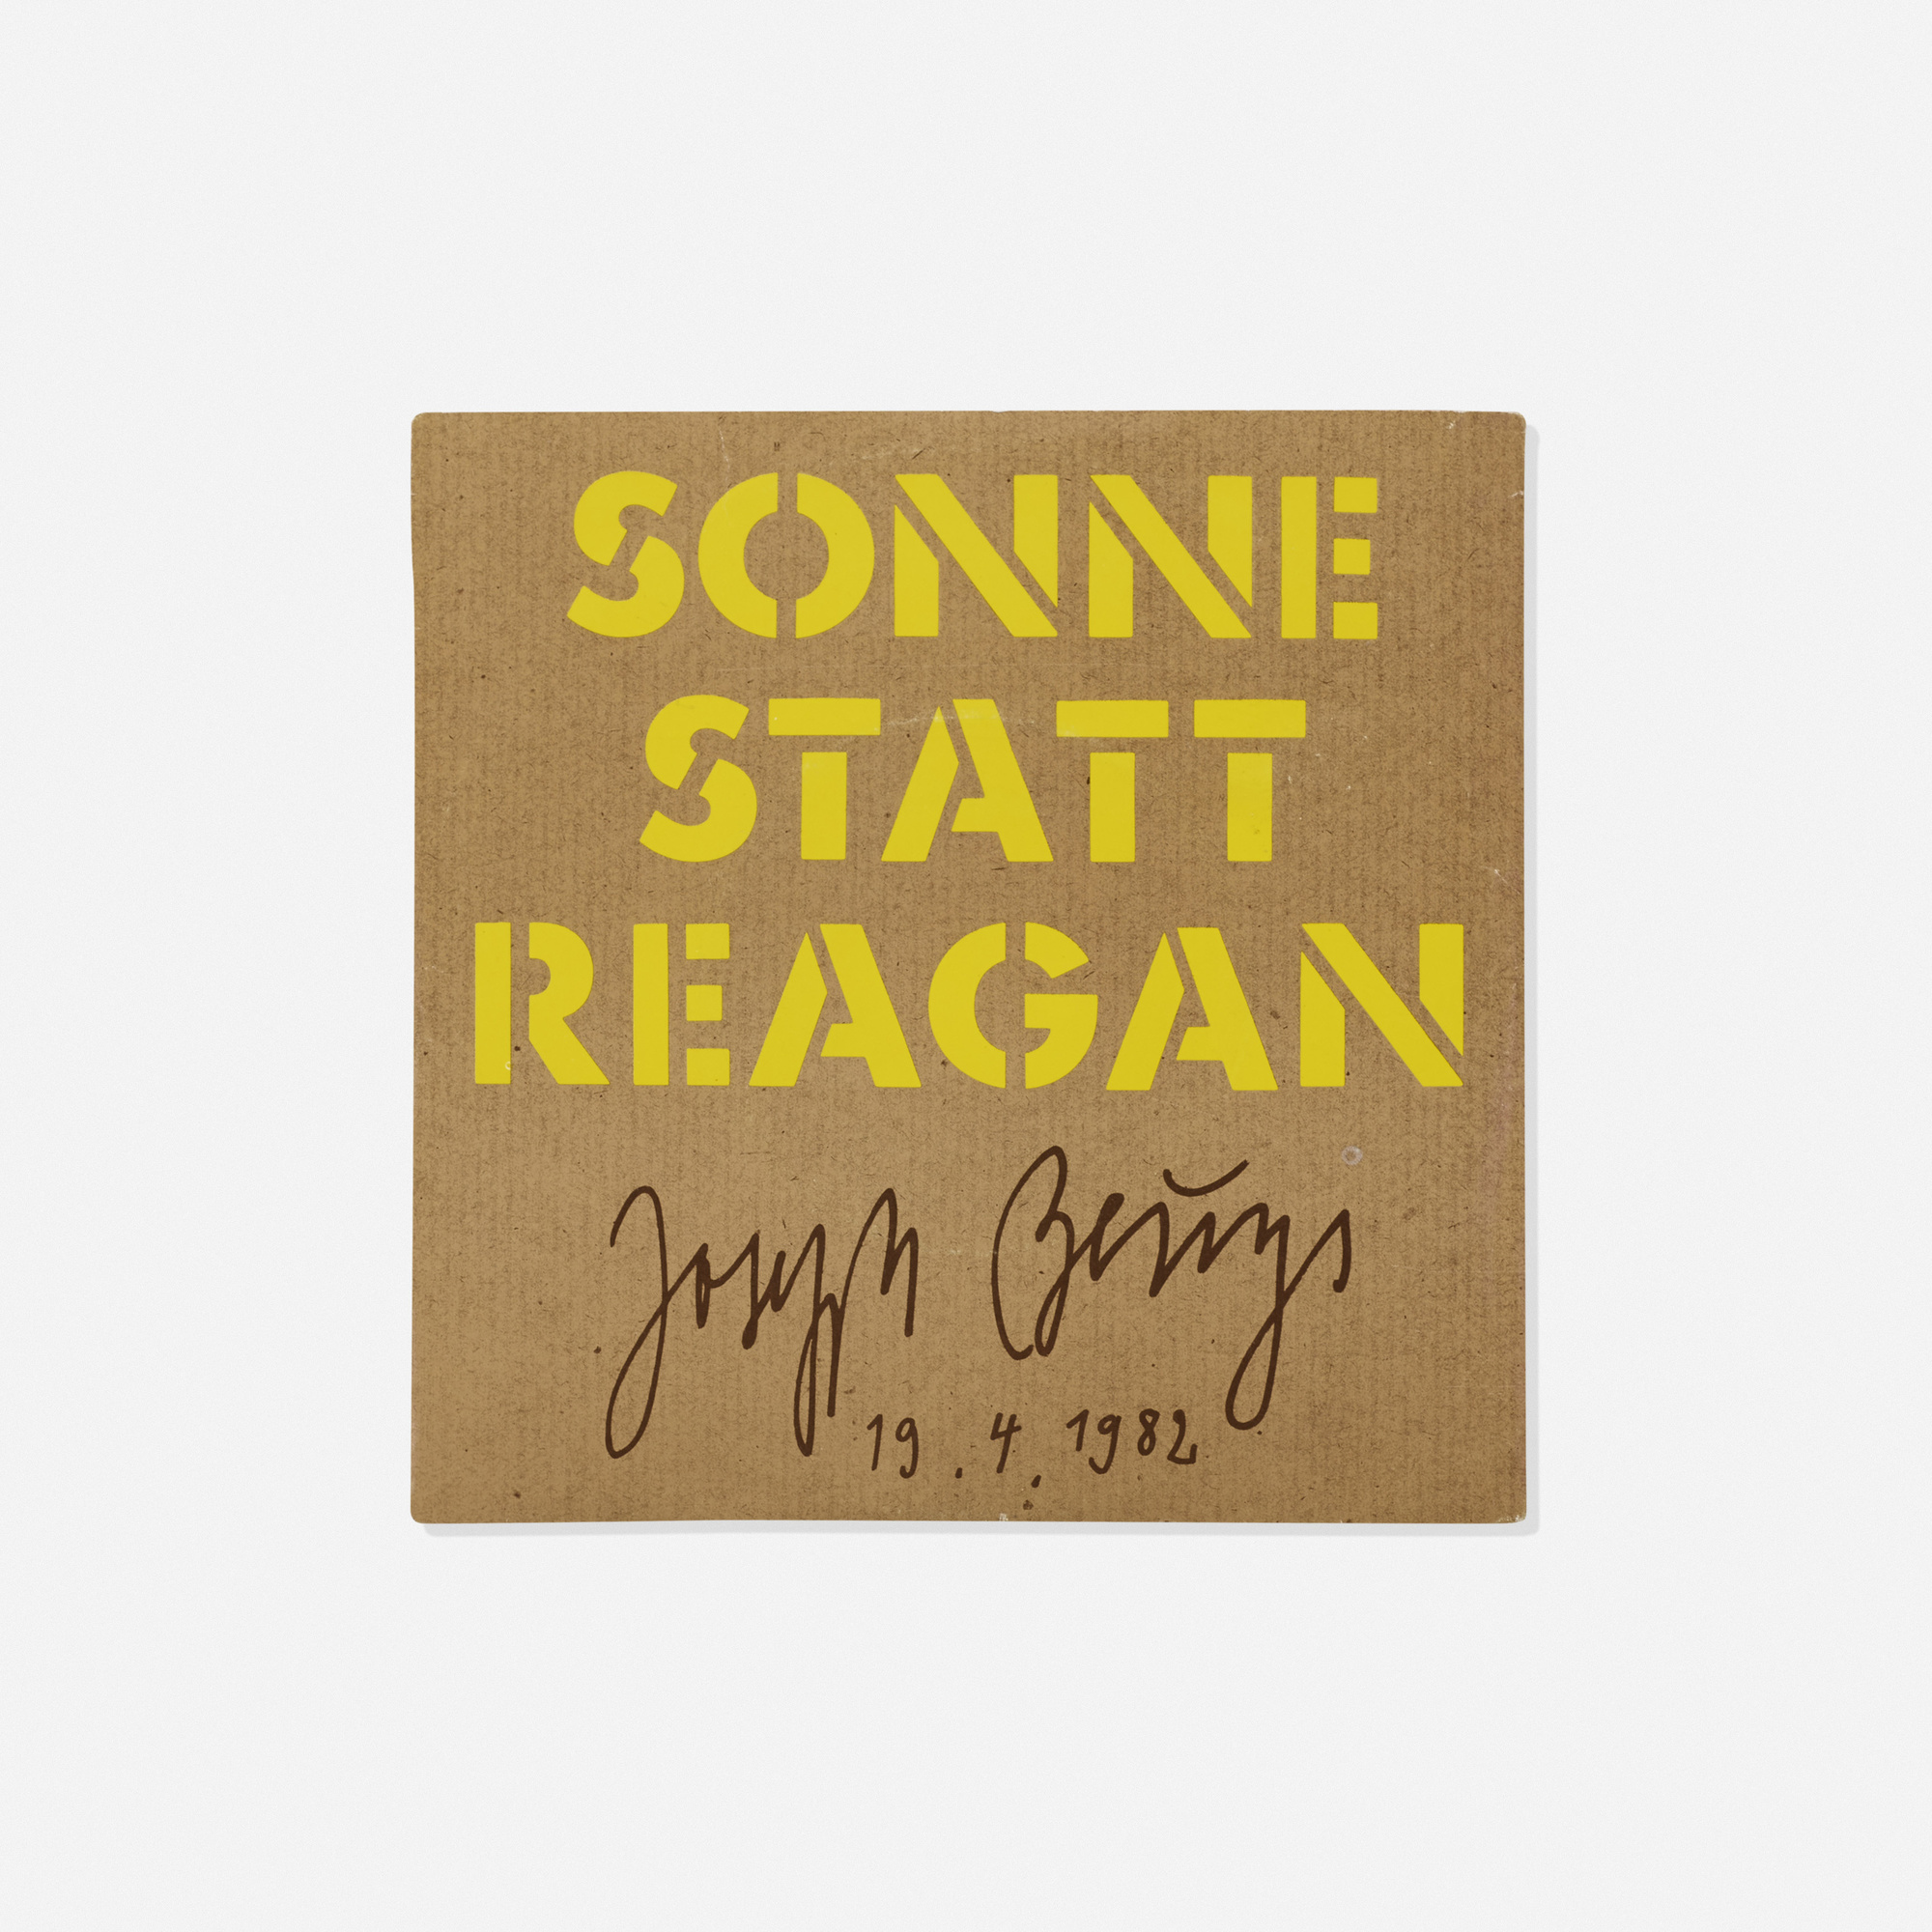 173: Joseph Beuys / Sonne Statt Reagan (1 of 1)